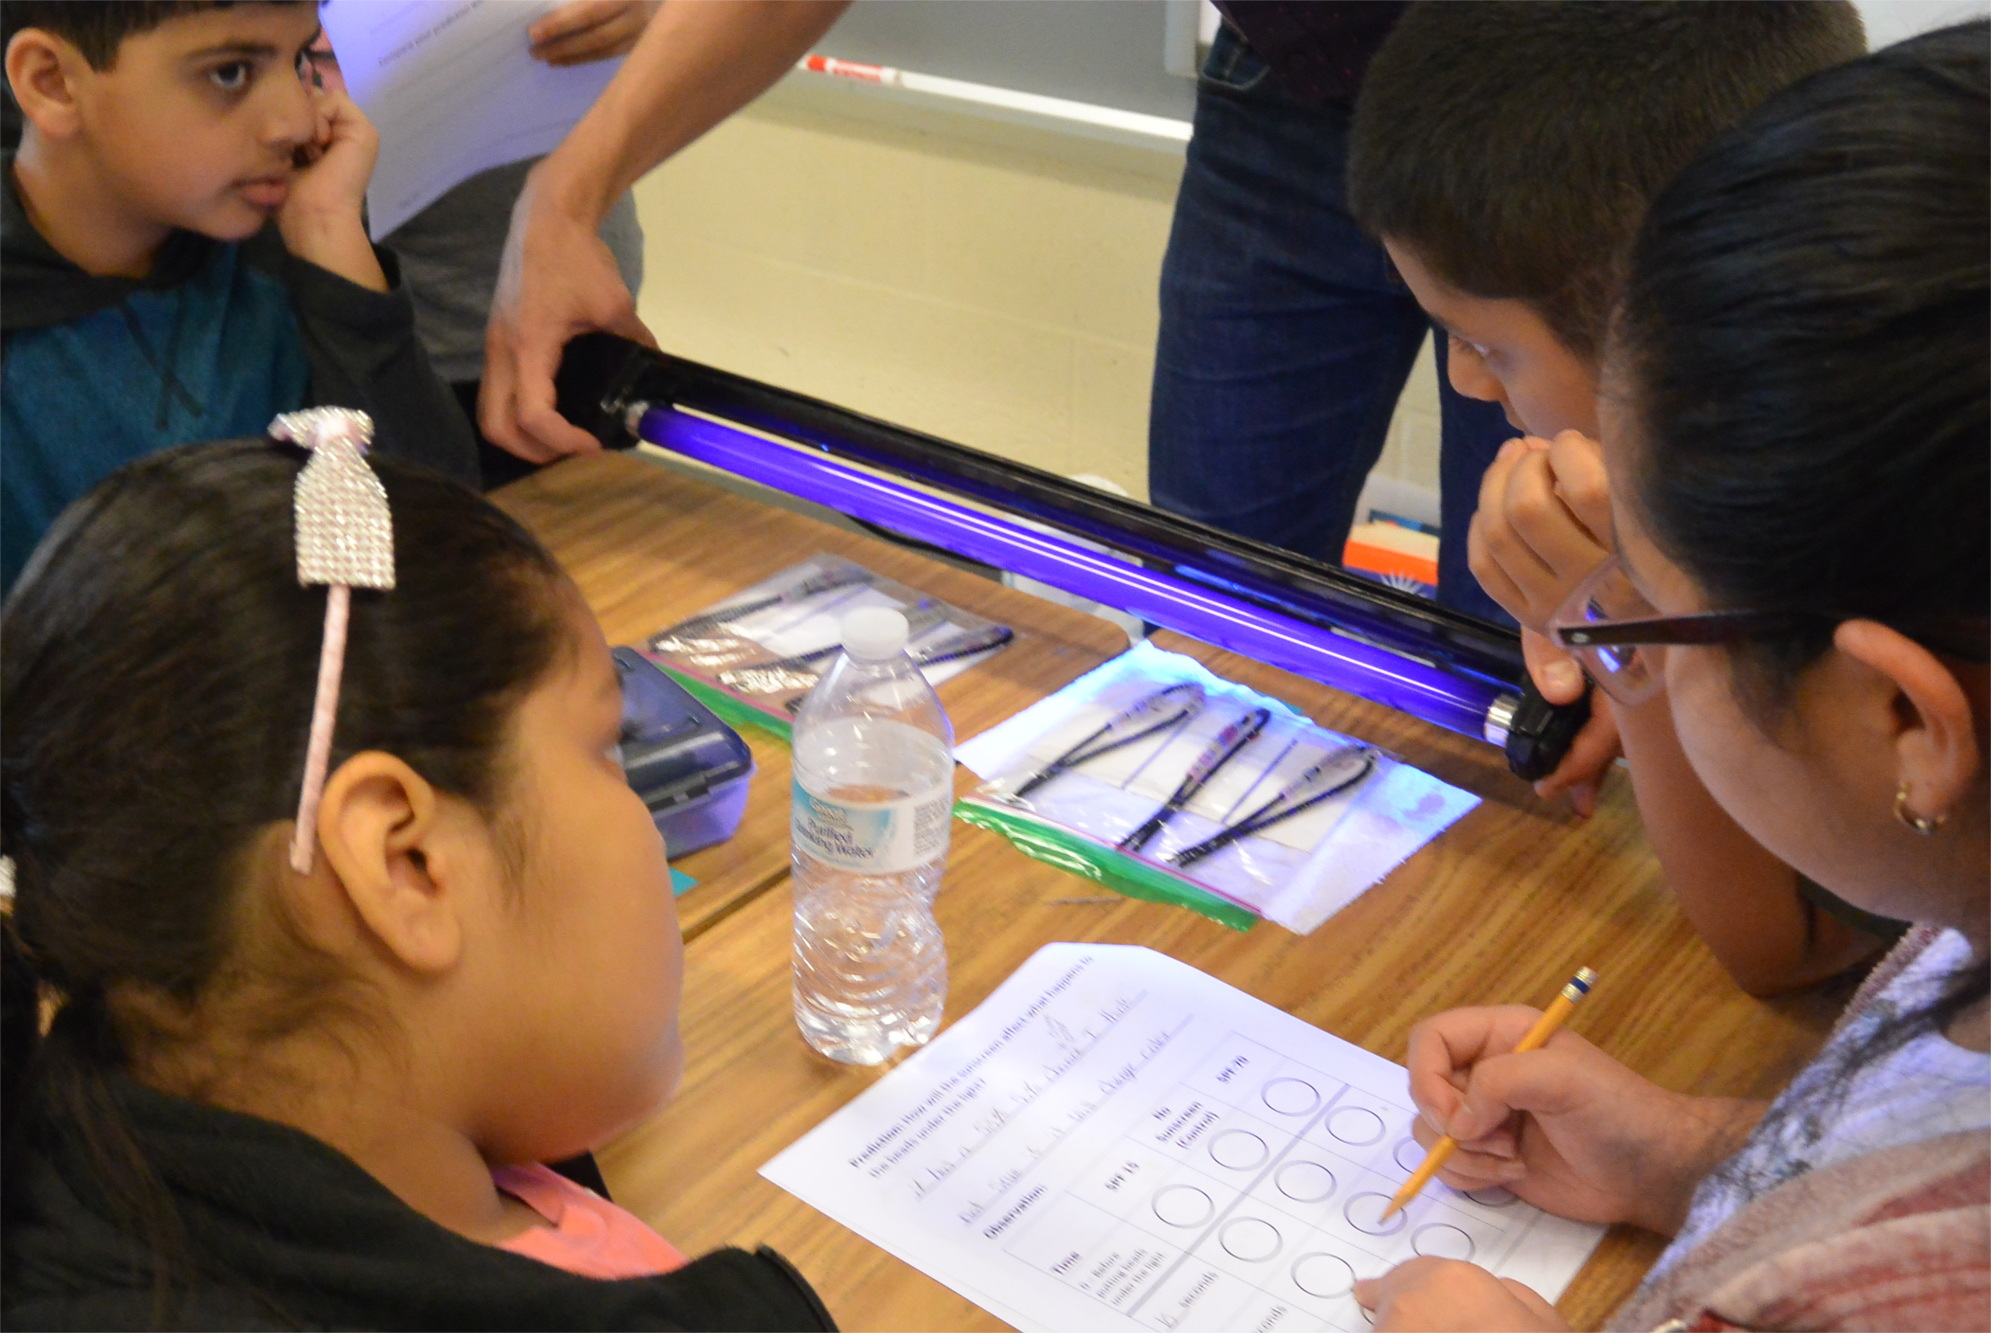 A black light is being held over a variety of bagged strings. Students observe.